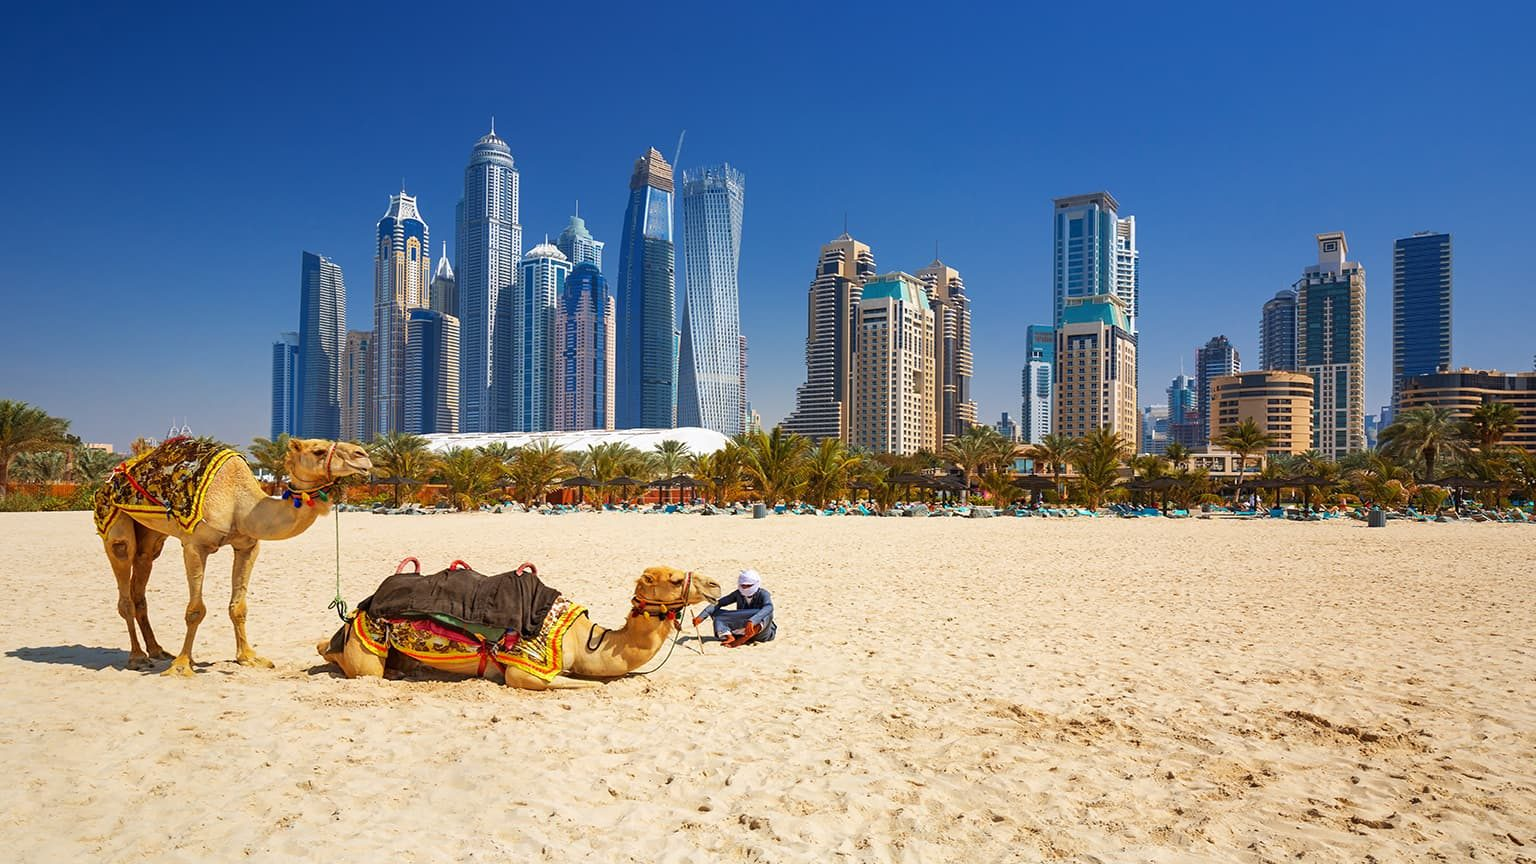 The camels on Jumeirah beach and skyscrapers in the backround in Dubai